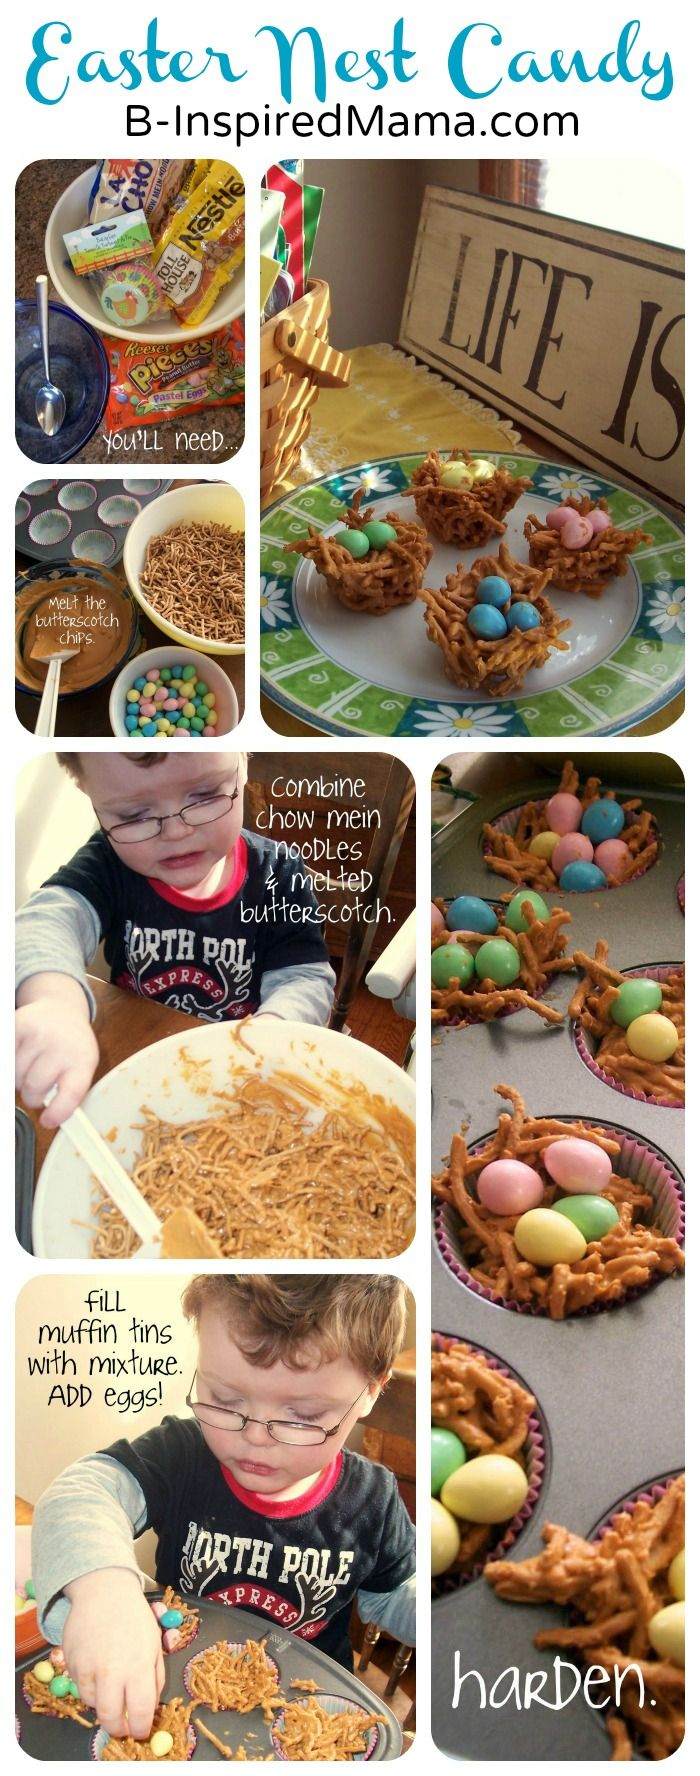 Nest Candy Easter Recipe from B-InspiredMama.com